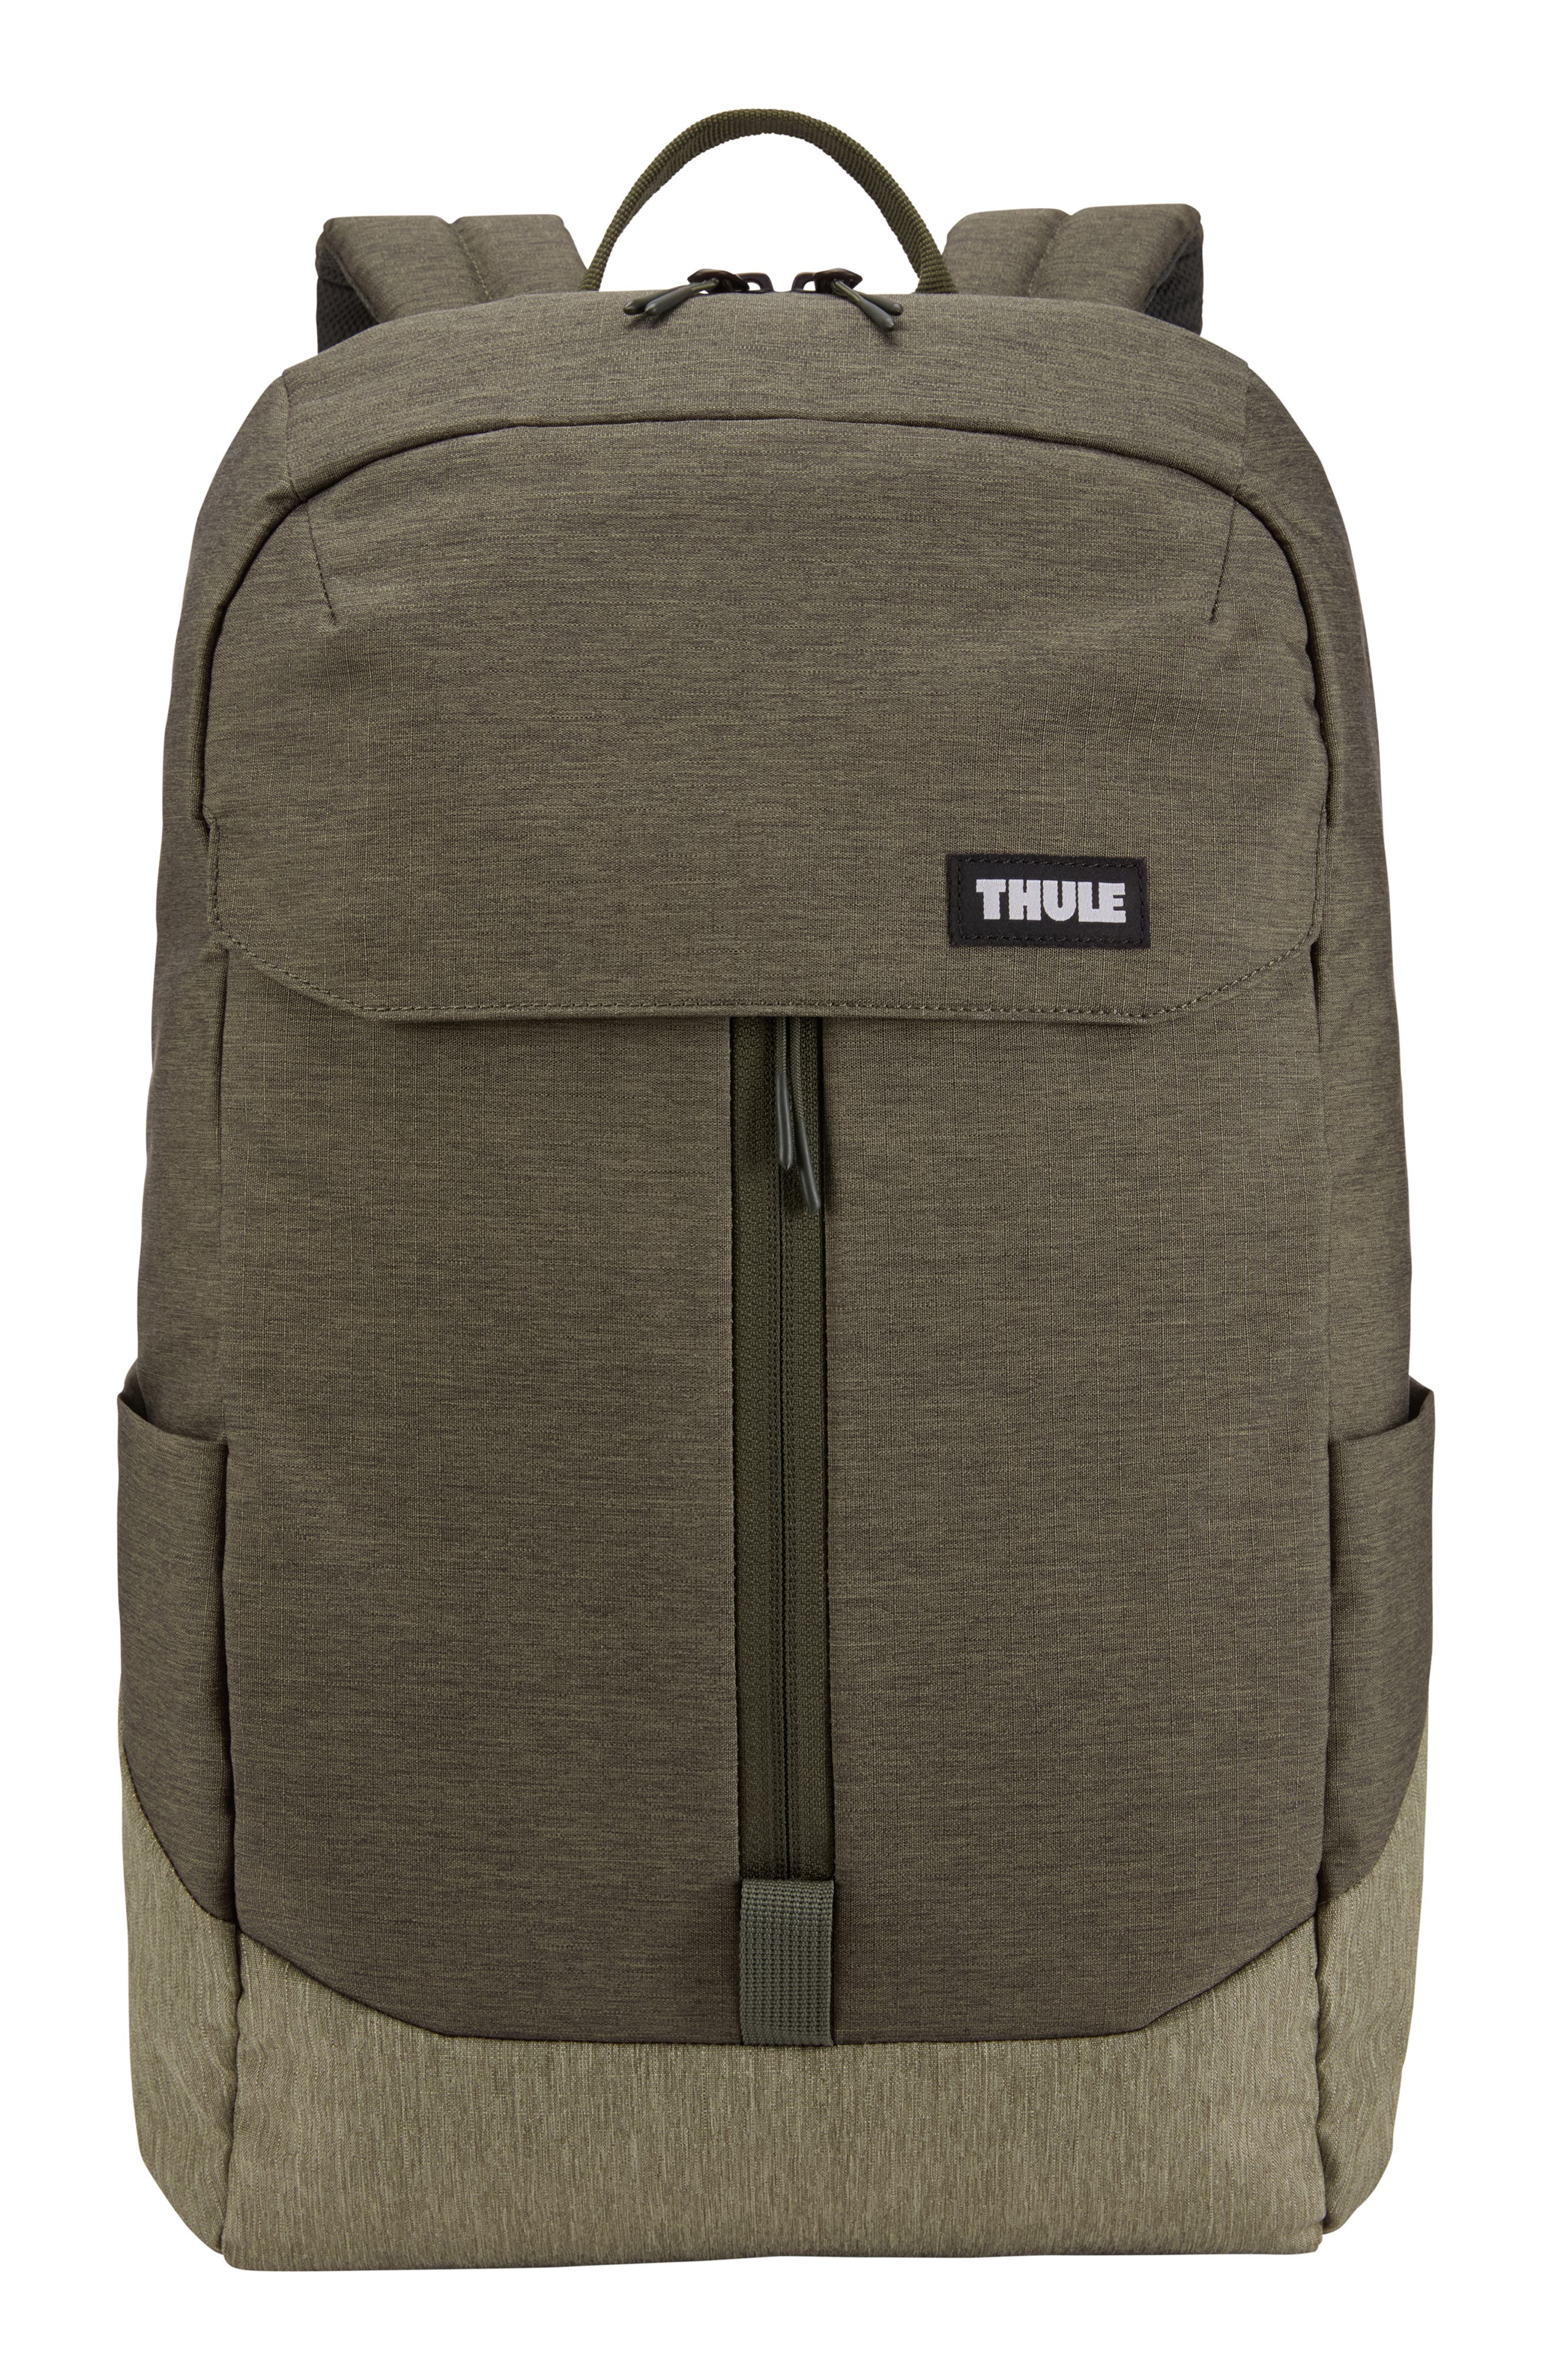 Thule Lithos Backpack - Green